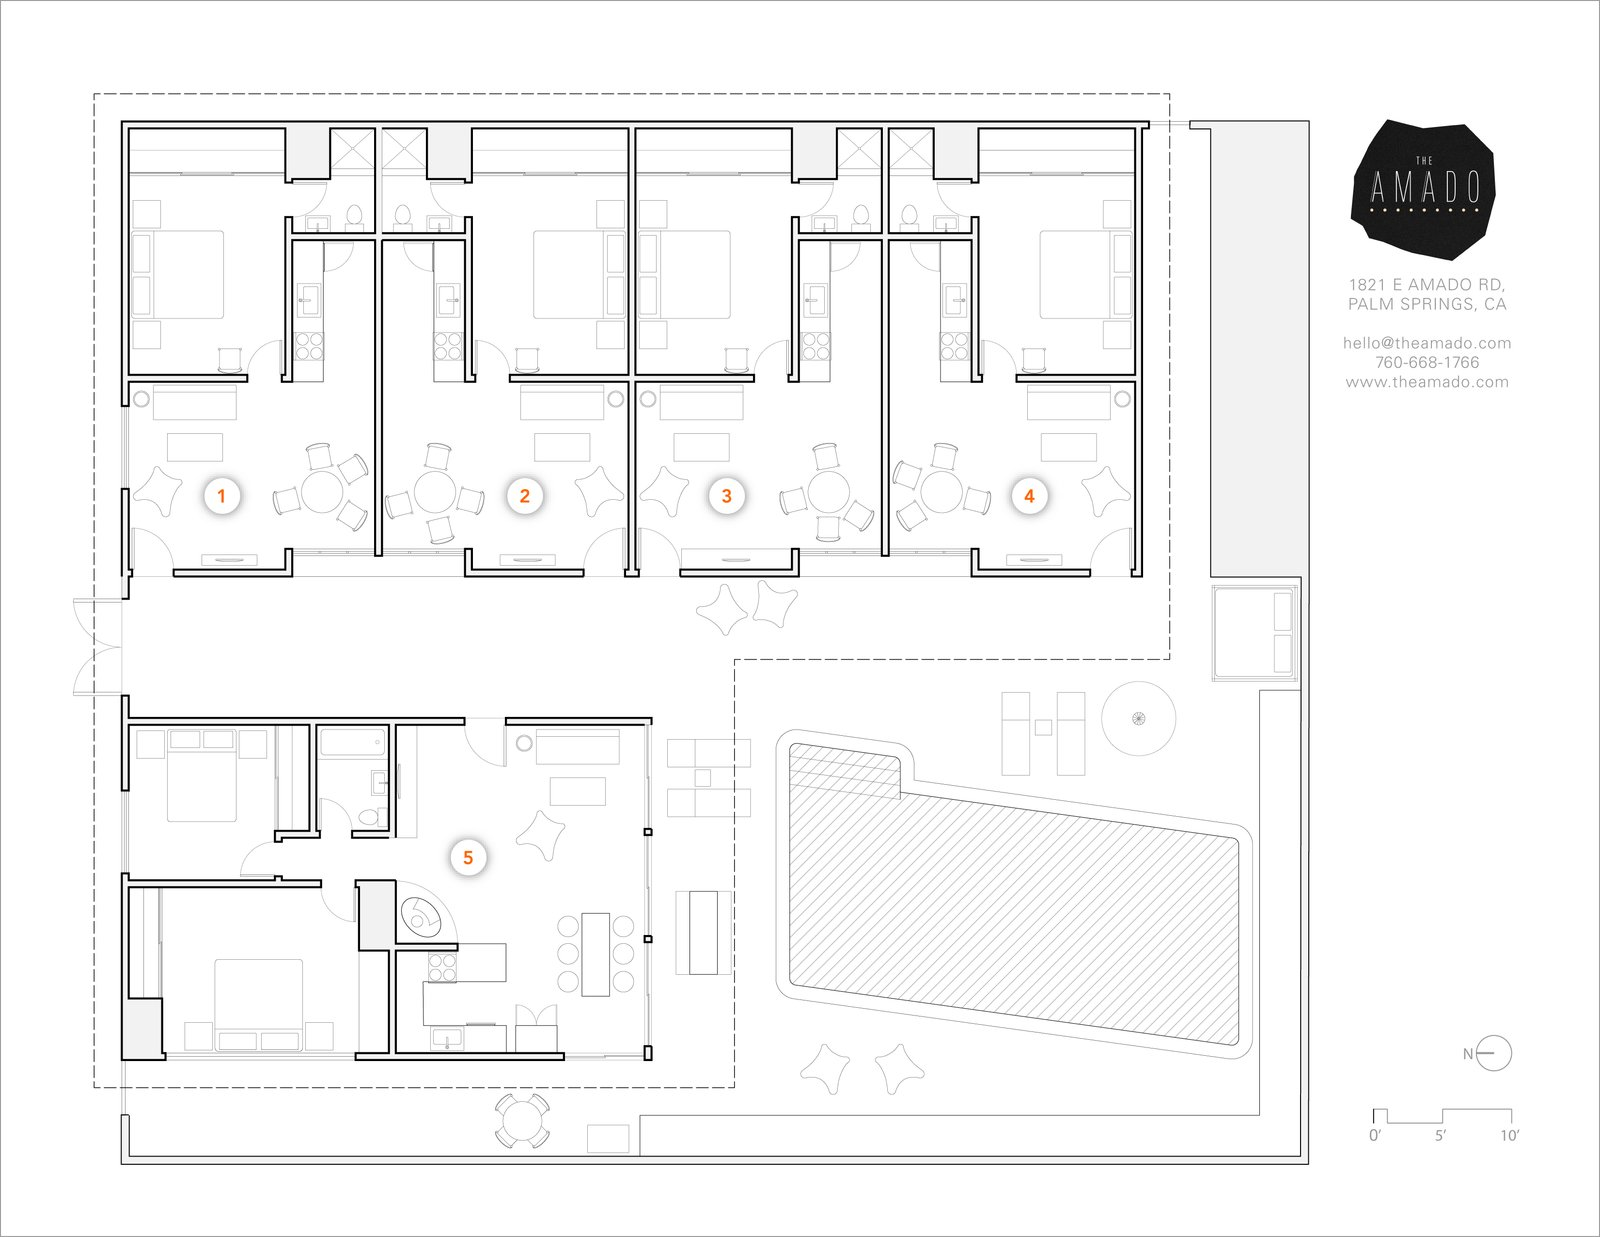 The Amado hotel floorplan.